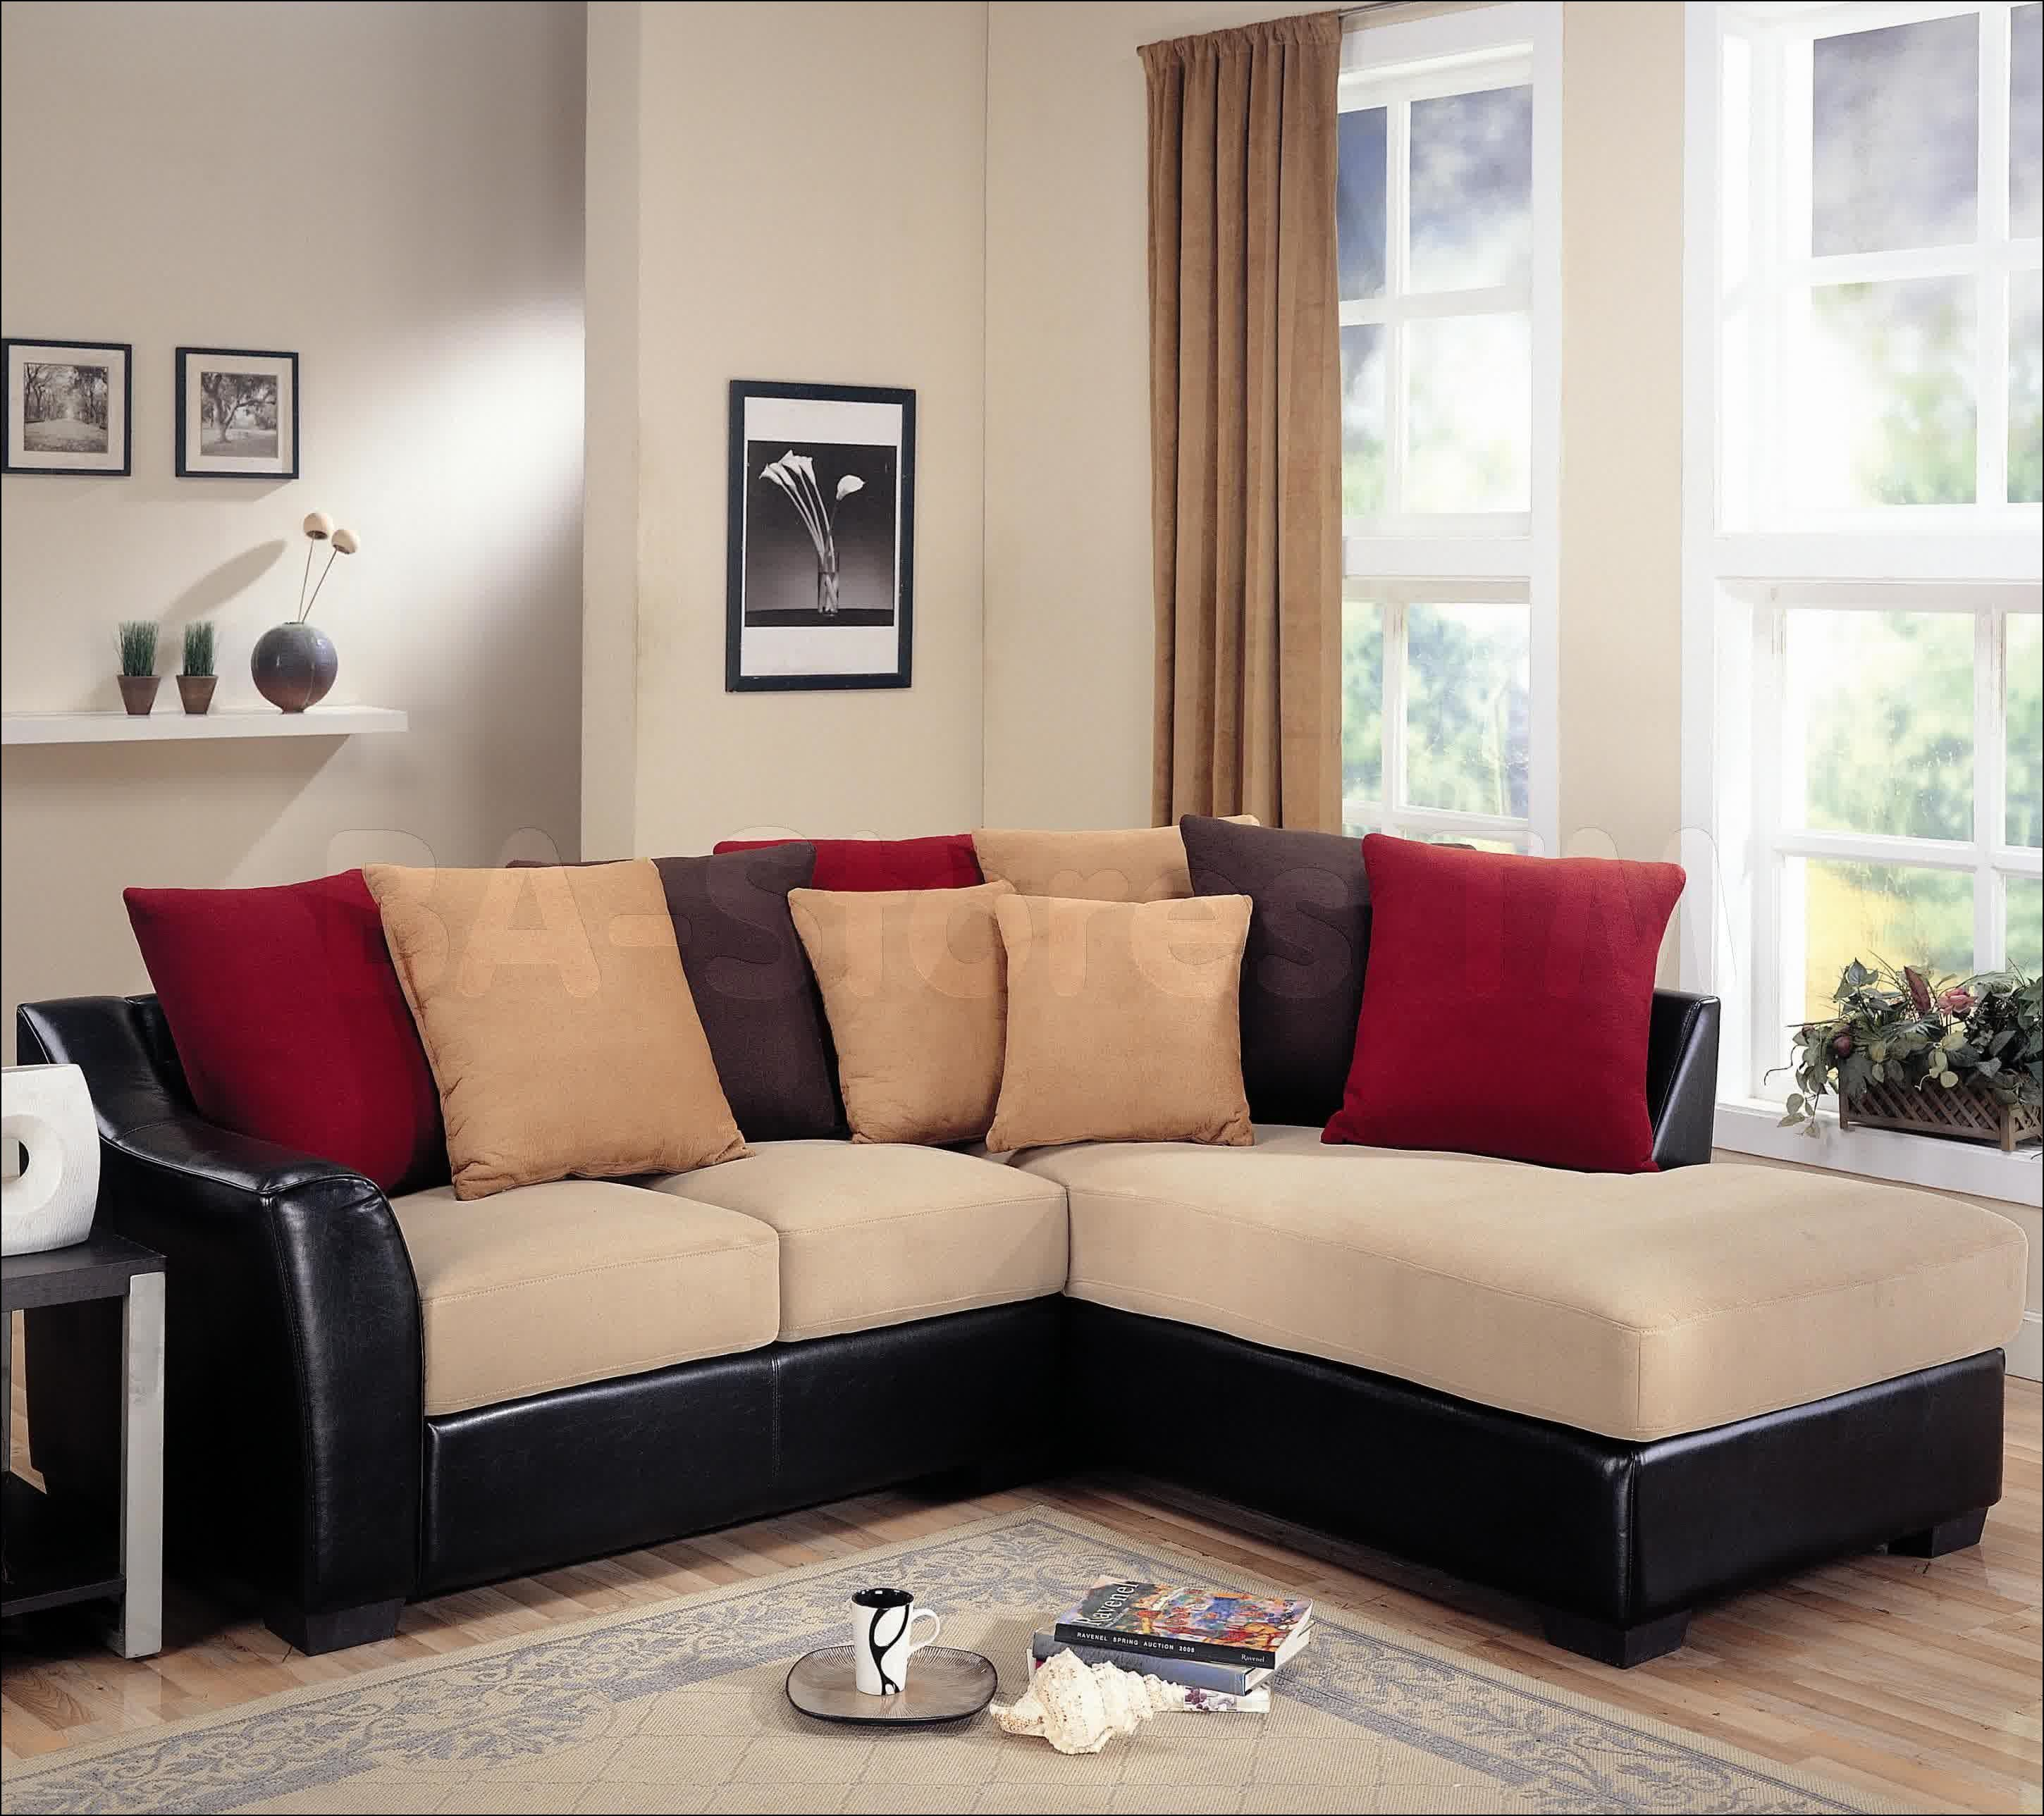 Affordable Sectional Couches  Couch & Sofa Gallery  Pinterest Fair Cheap Living Room Sets Under 300 2018